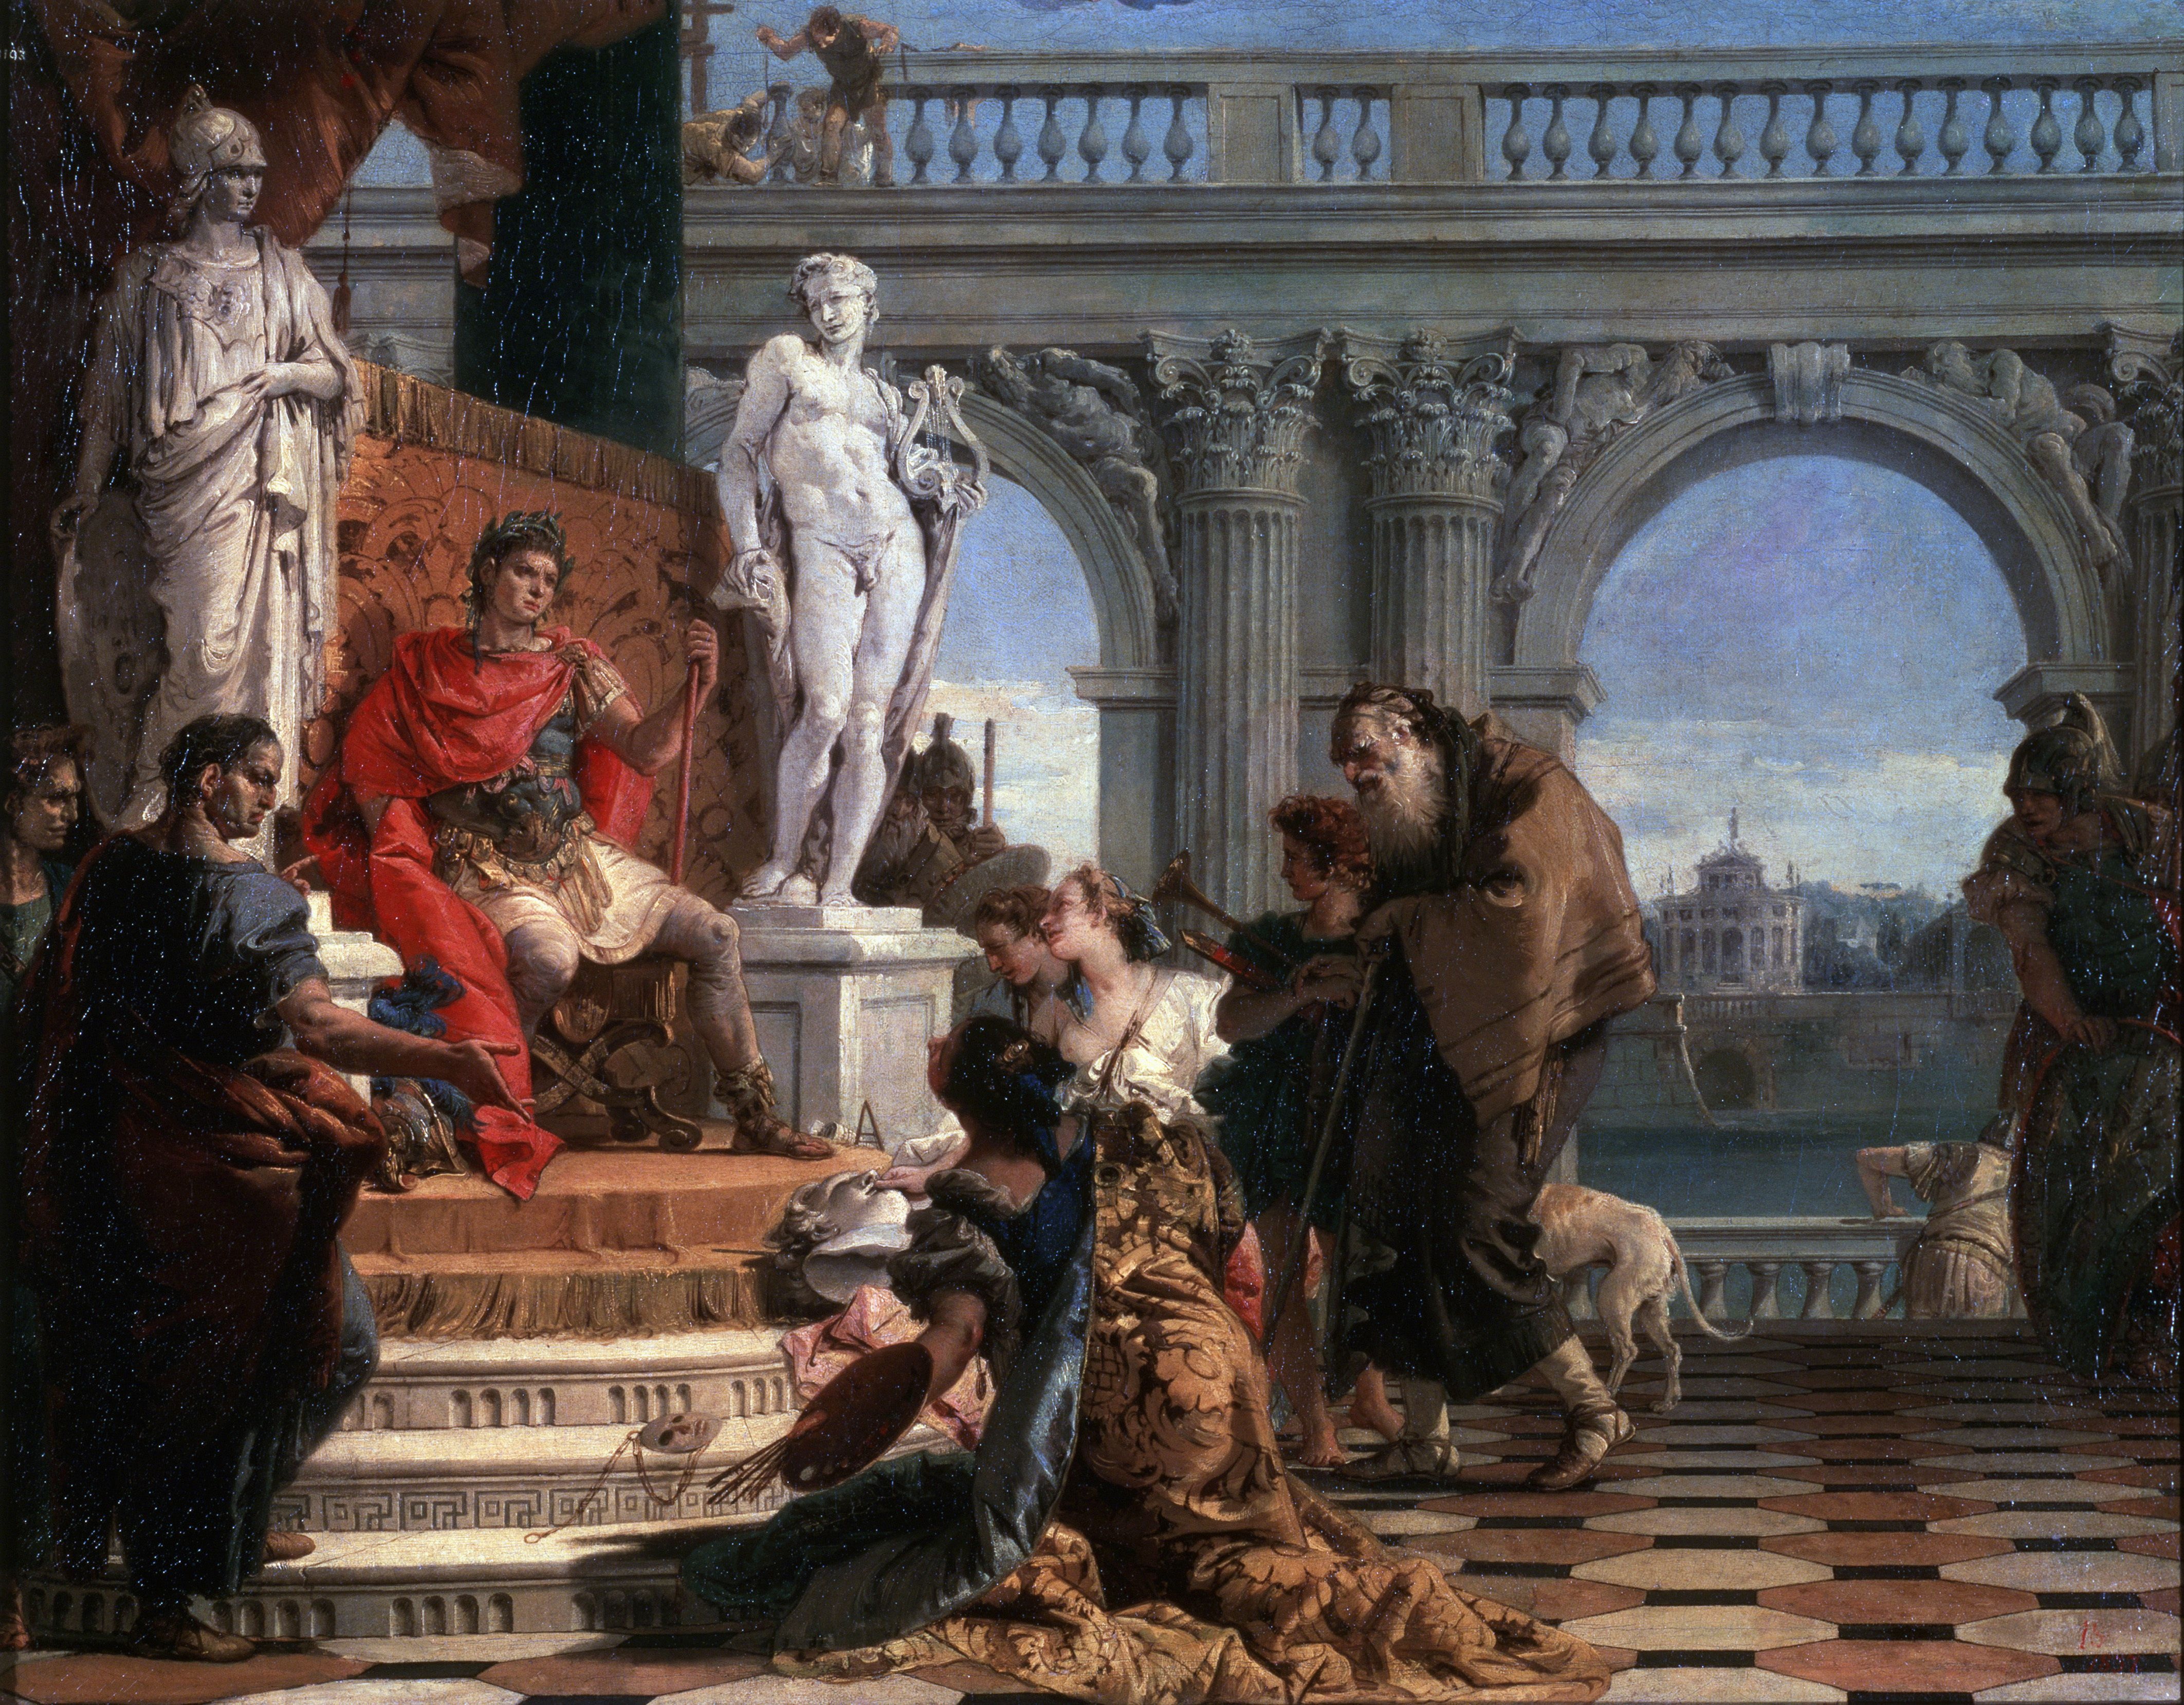 The painting 'Maecenas presenting the Arts to Augustus' by Giovanni Battista Tiepolo